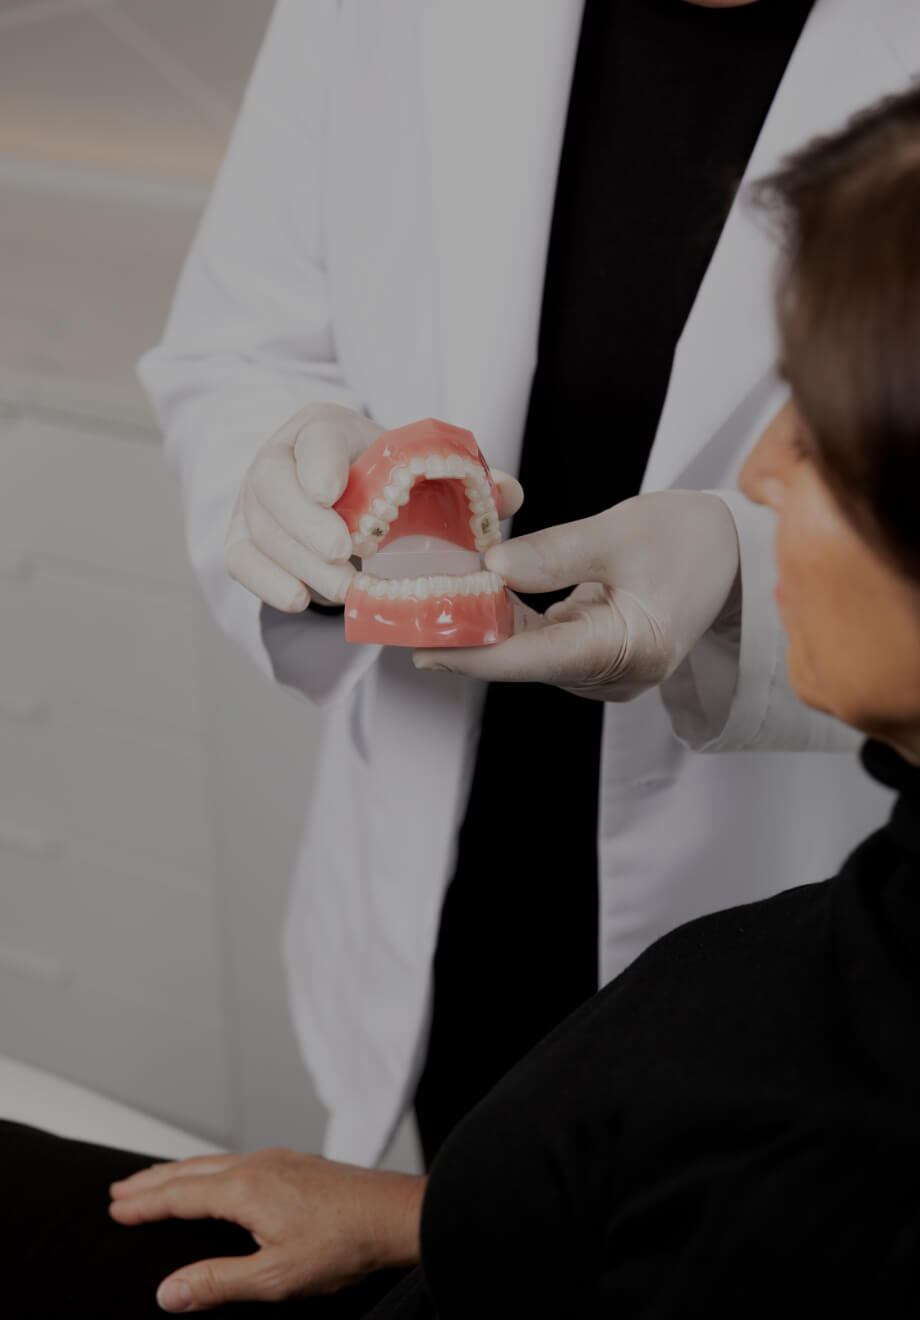 The dentist at Clinique Chloé holding dentures in his hands and explaining the Invisalign treatment to a female patient